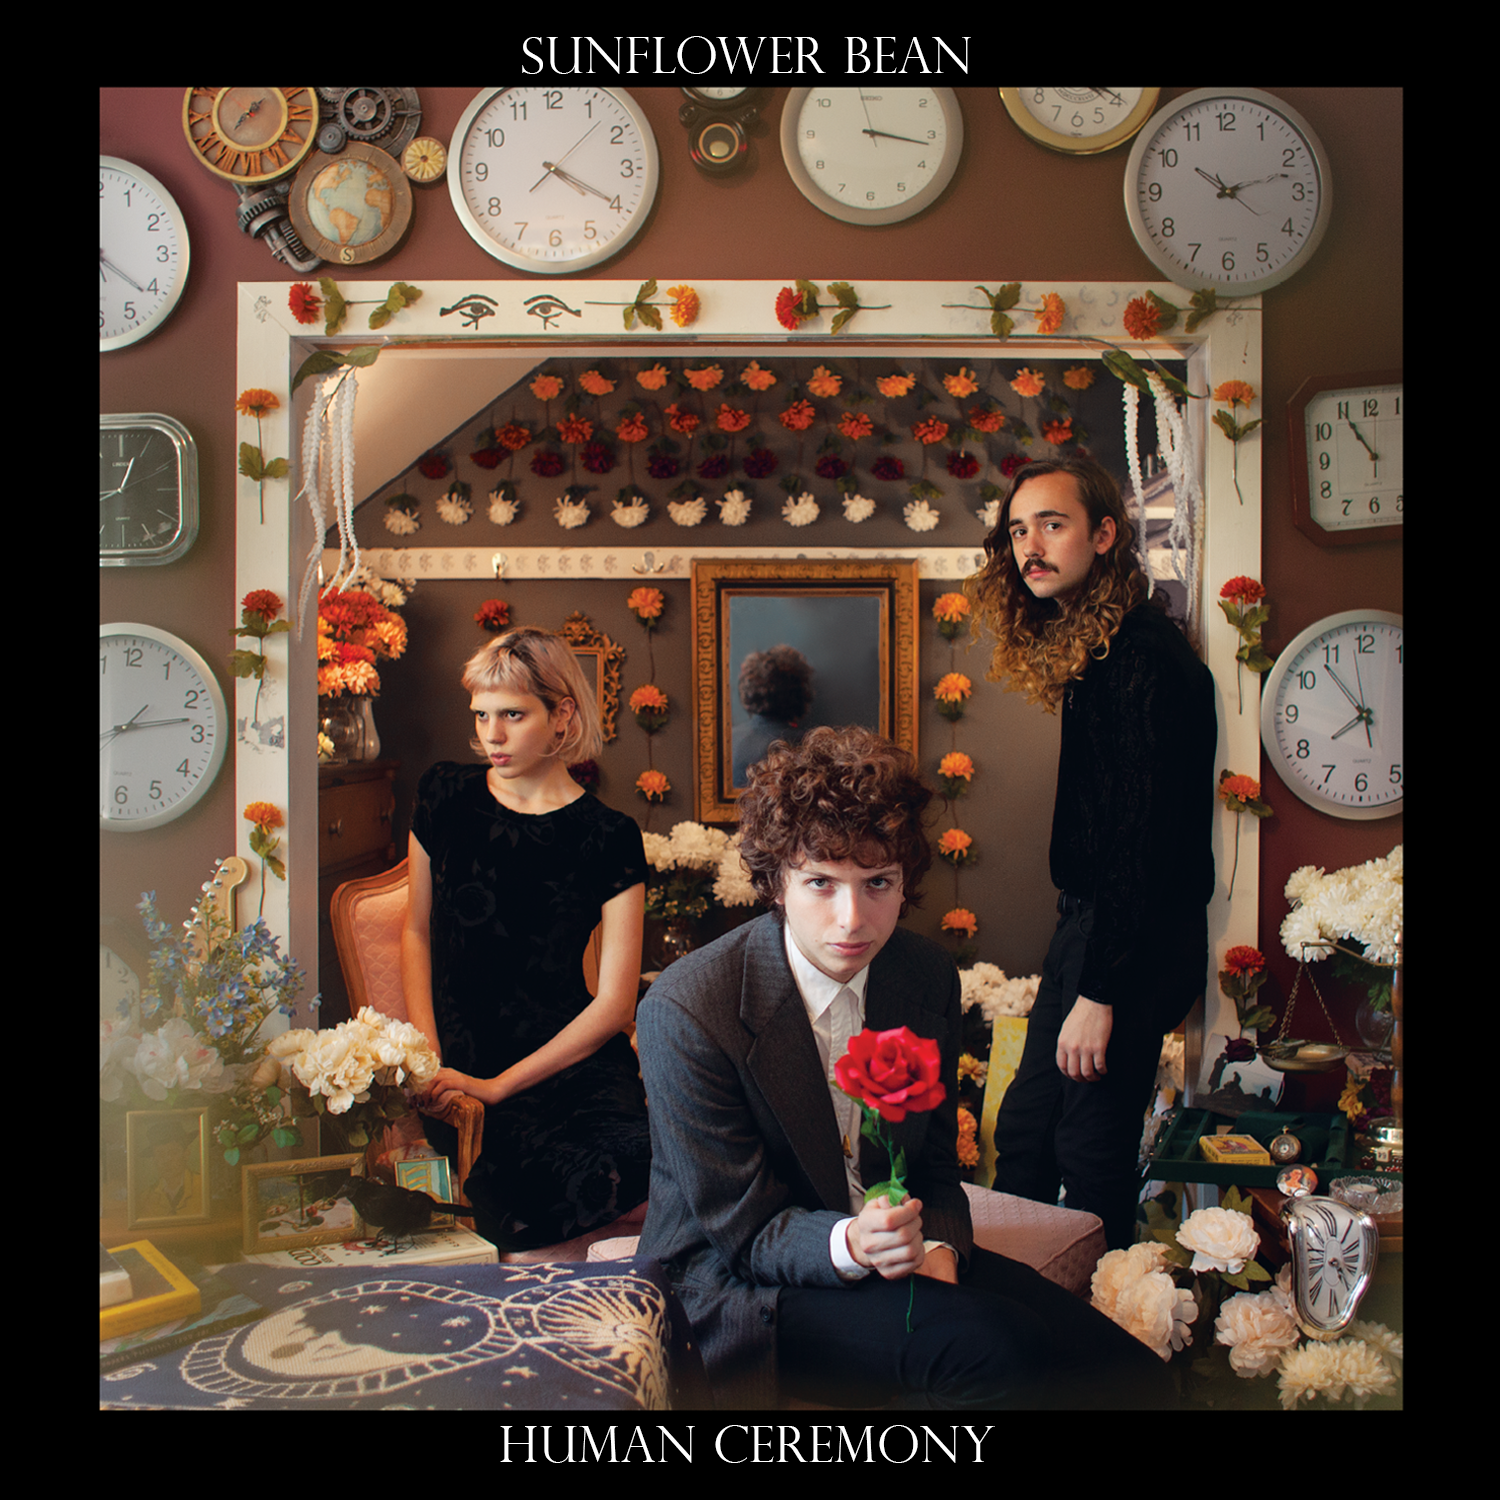 Sunflower Bean - Human Ceremony - album cover (1500x1500)